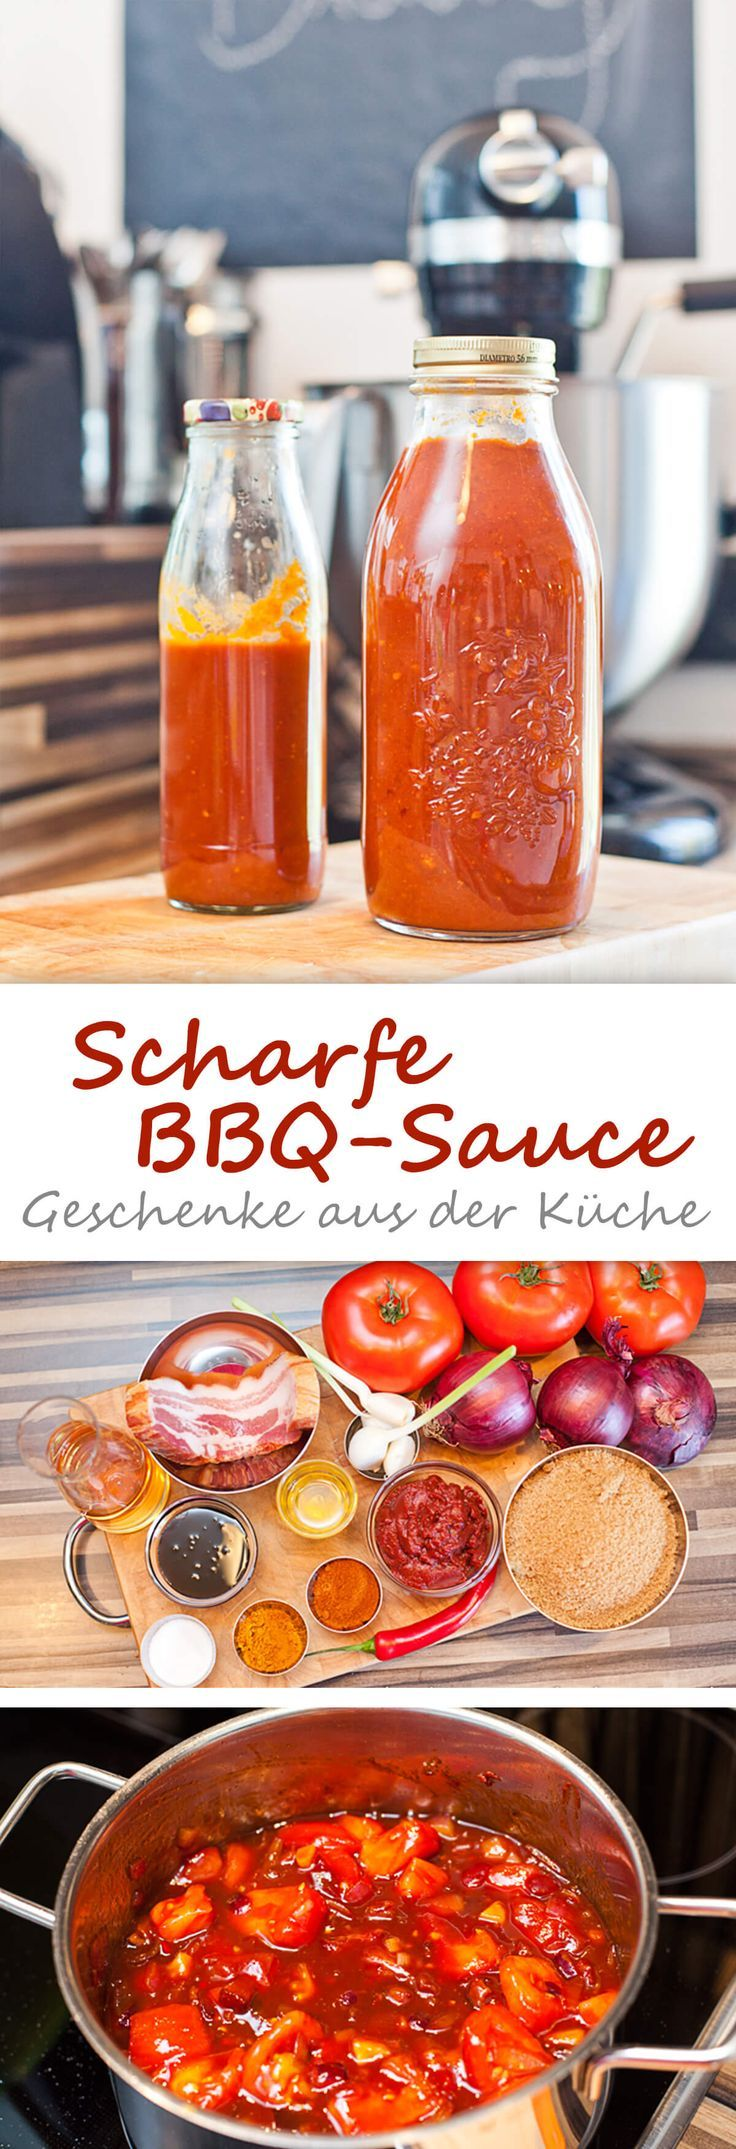 540 best BBQ images on Pinterest | Grilling, Cooking food and Kitchens